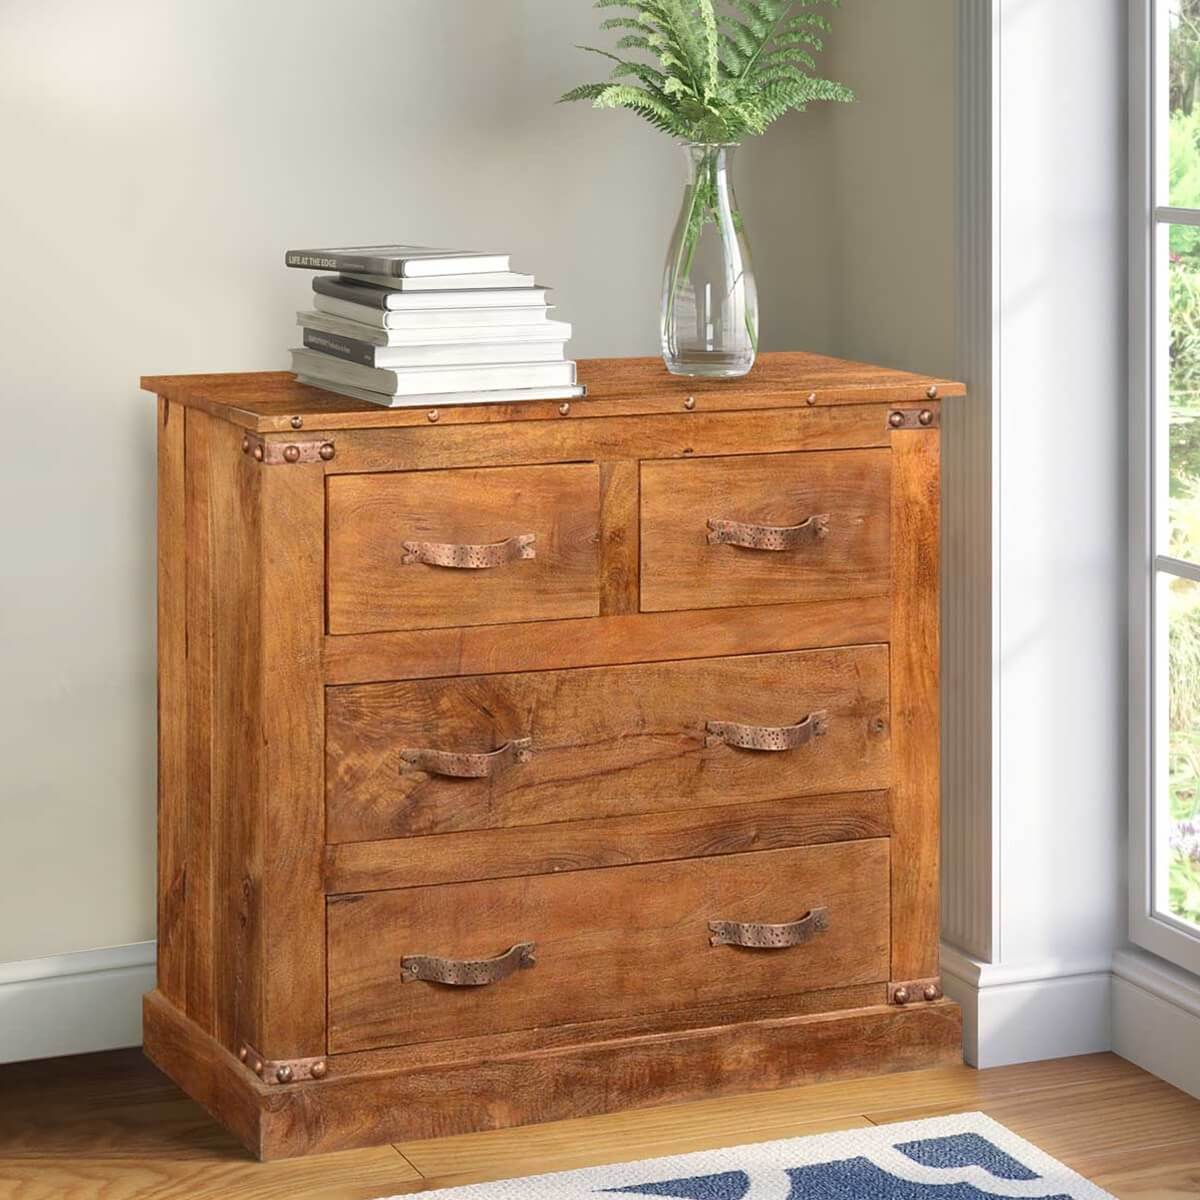 Mango Bedroom Furniture Country Farmhouse Mango Wood Marble Bathroom Vanity Cabinet